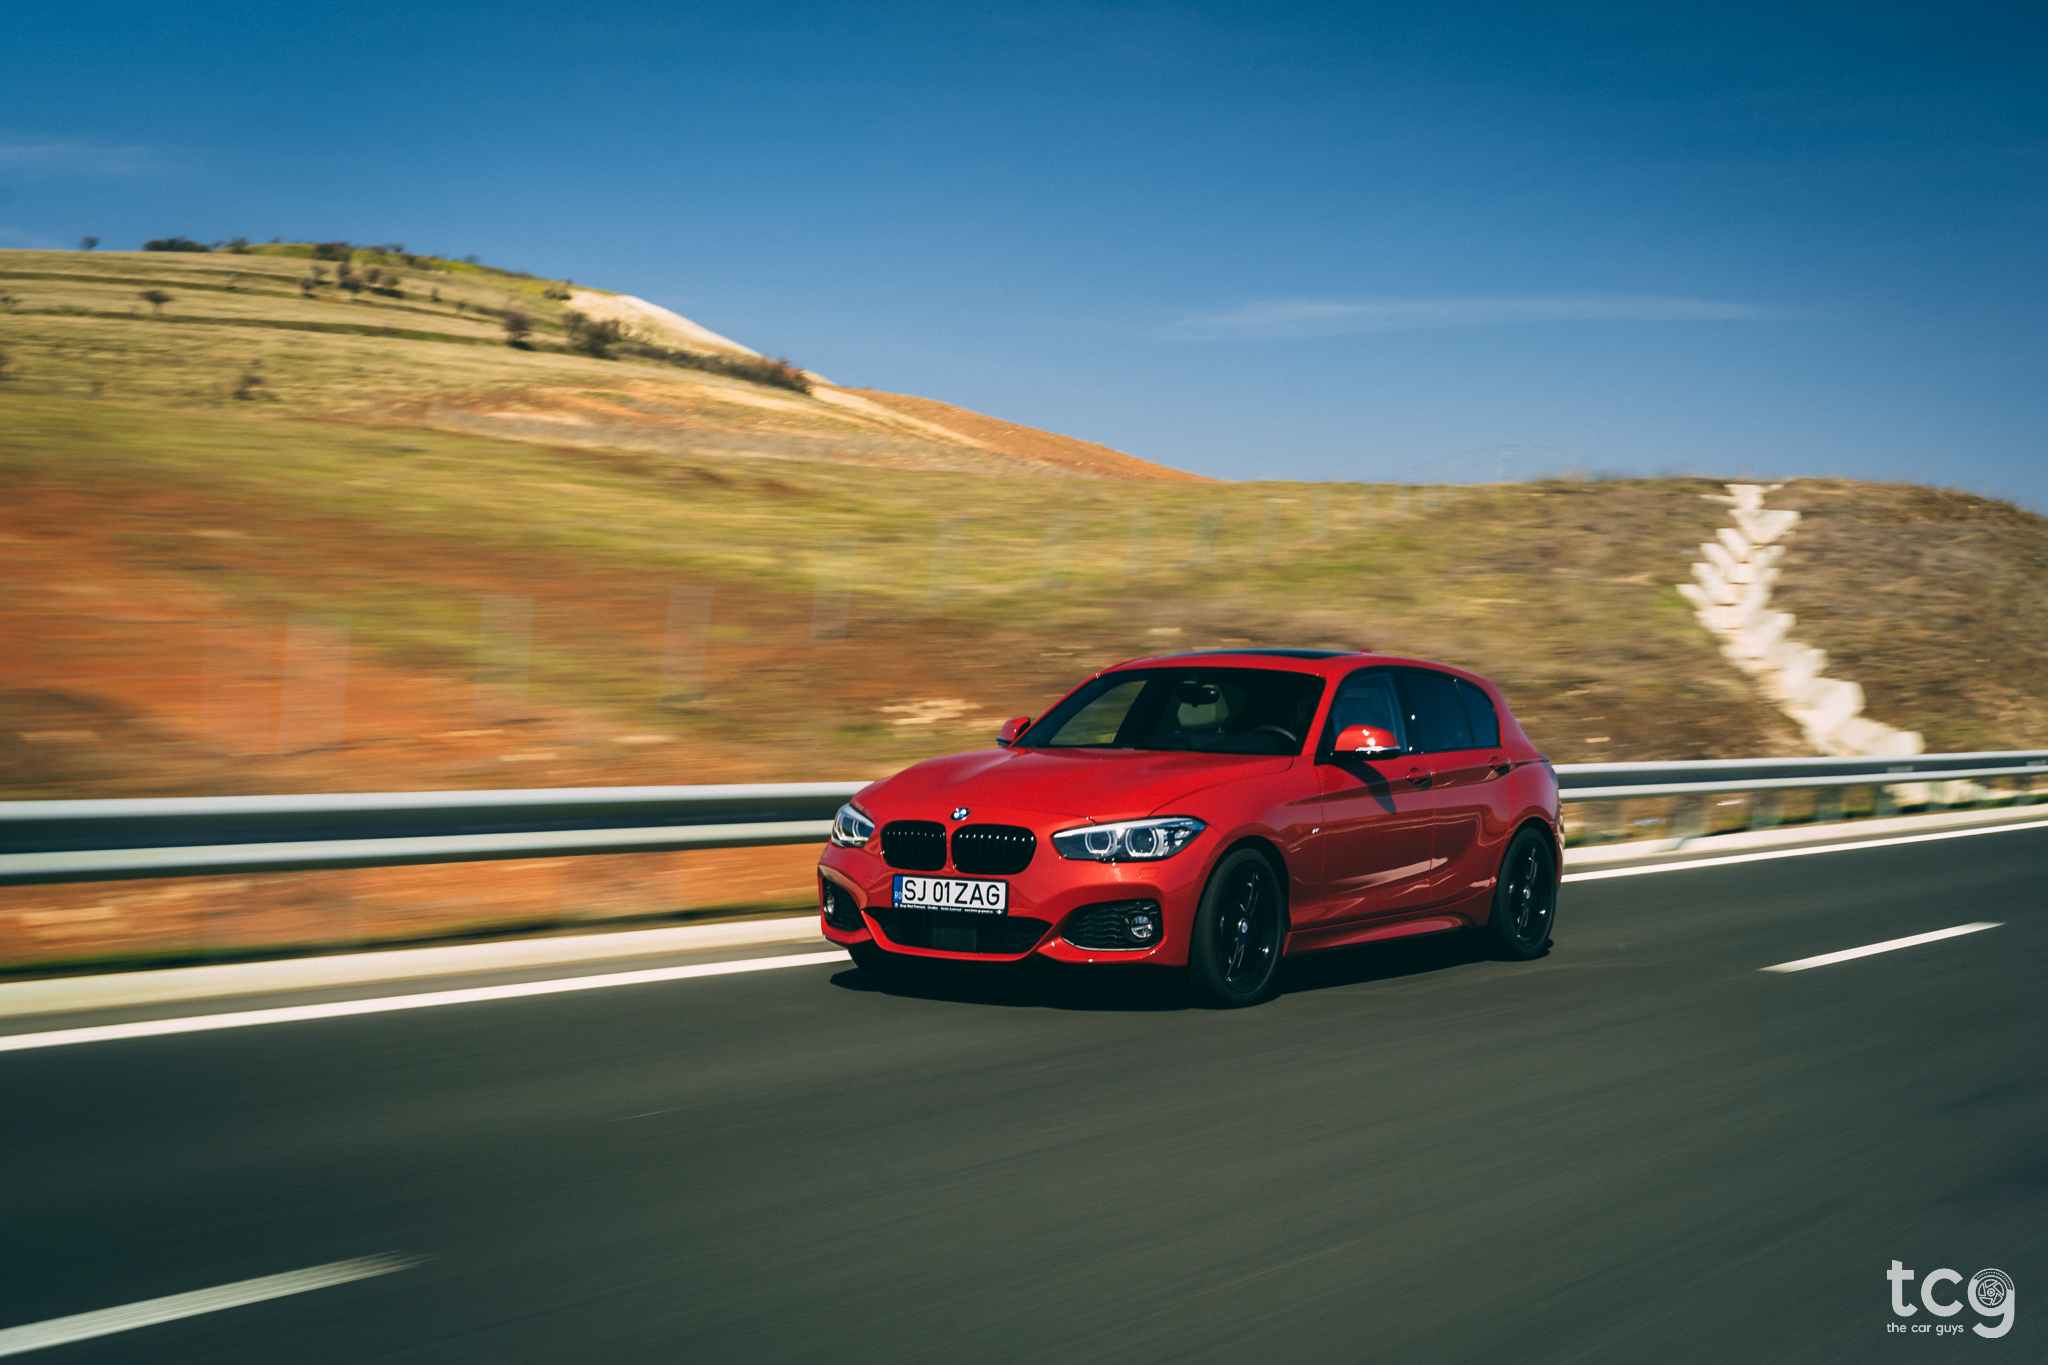 BMW 125d - A dying breed!